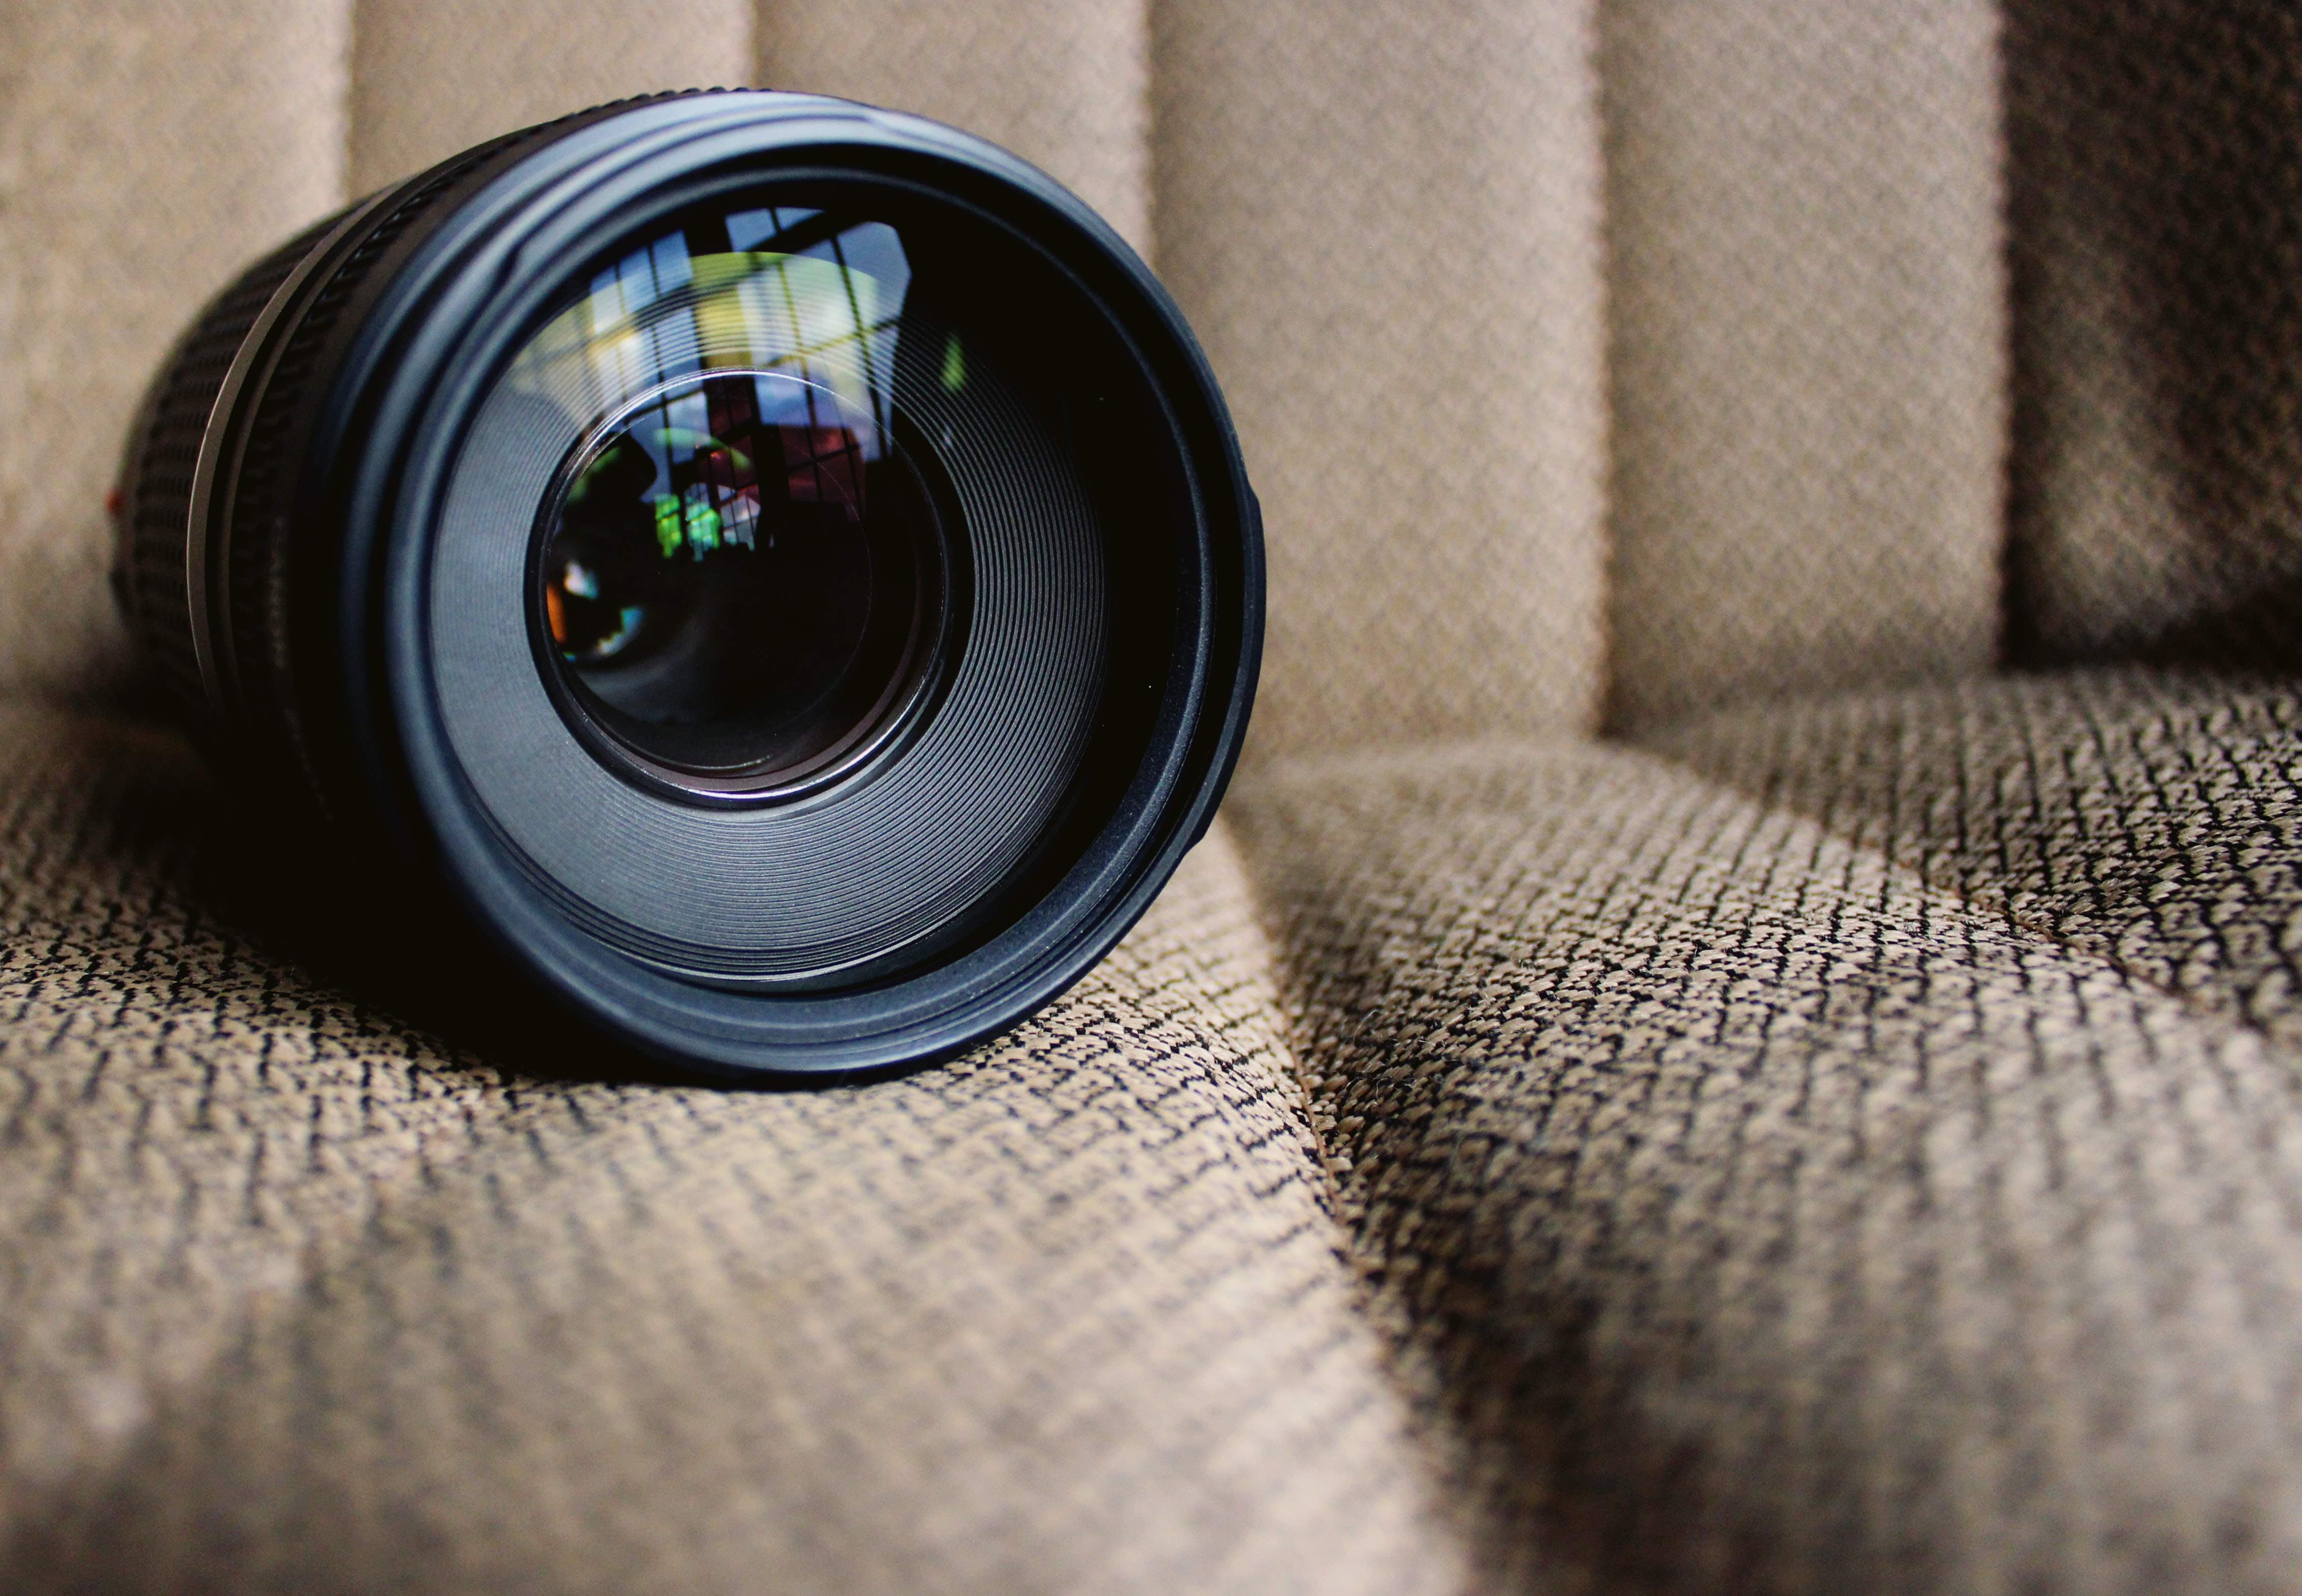 A close-up of a camera lens resting on the fabric texture of a chair.